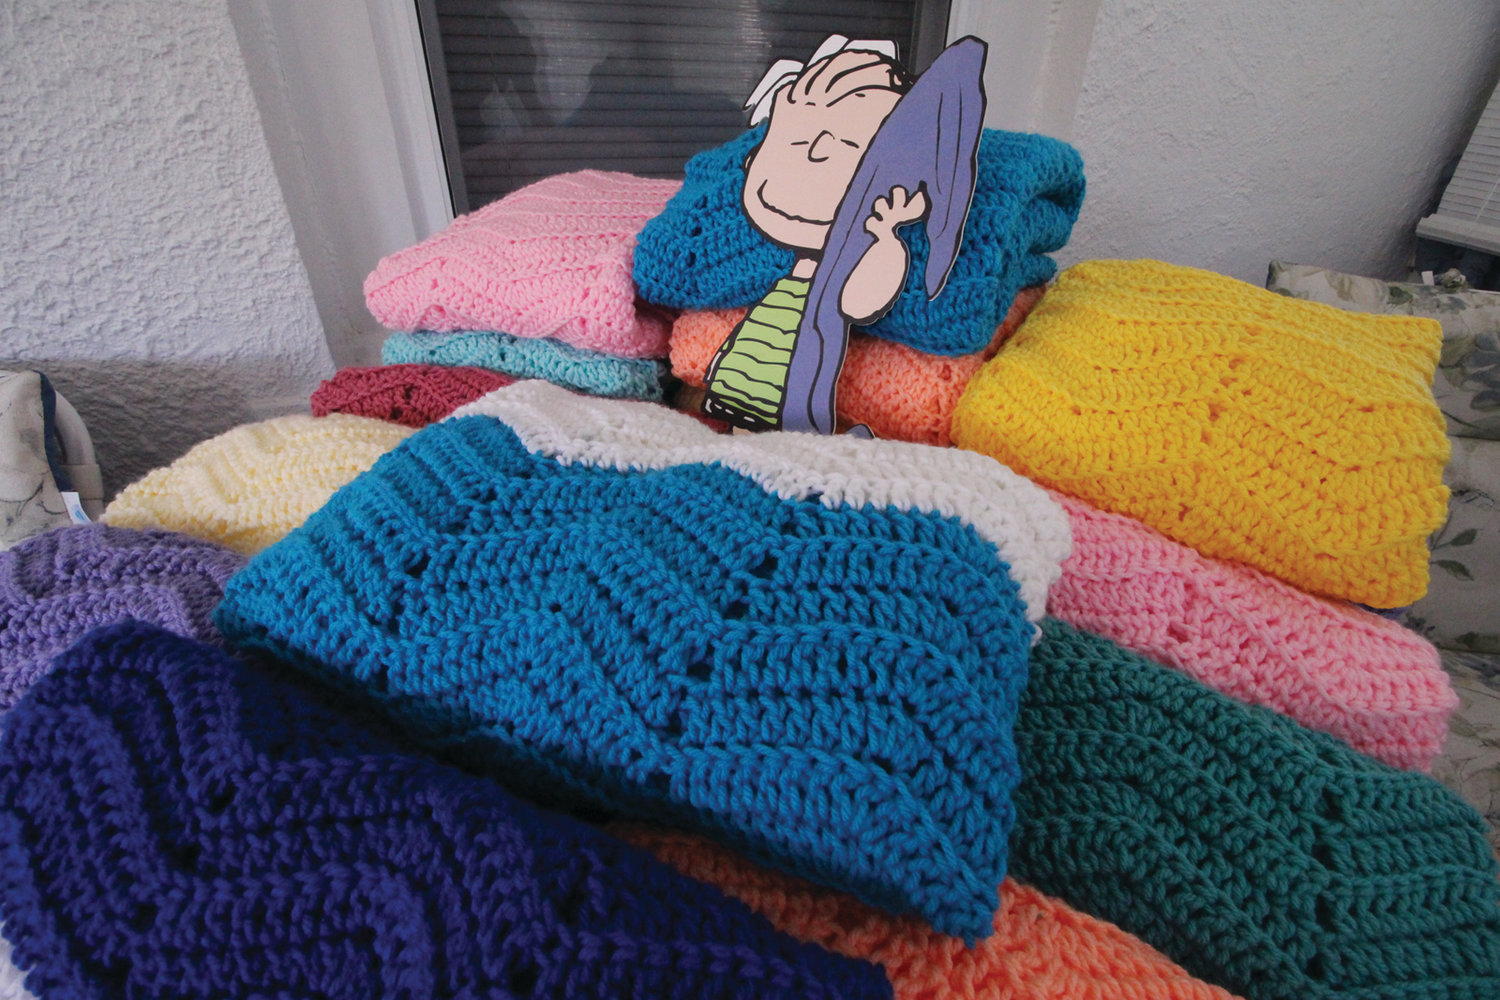 THERE TO COMFORT: This is just a sampling of the blankets Helen Smith has made for Project Linus. She averages 2½ blankets a week and has made more than 1,500 since 2007 to be distributed to hospitalized children and to be given out by first responders.